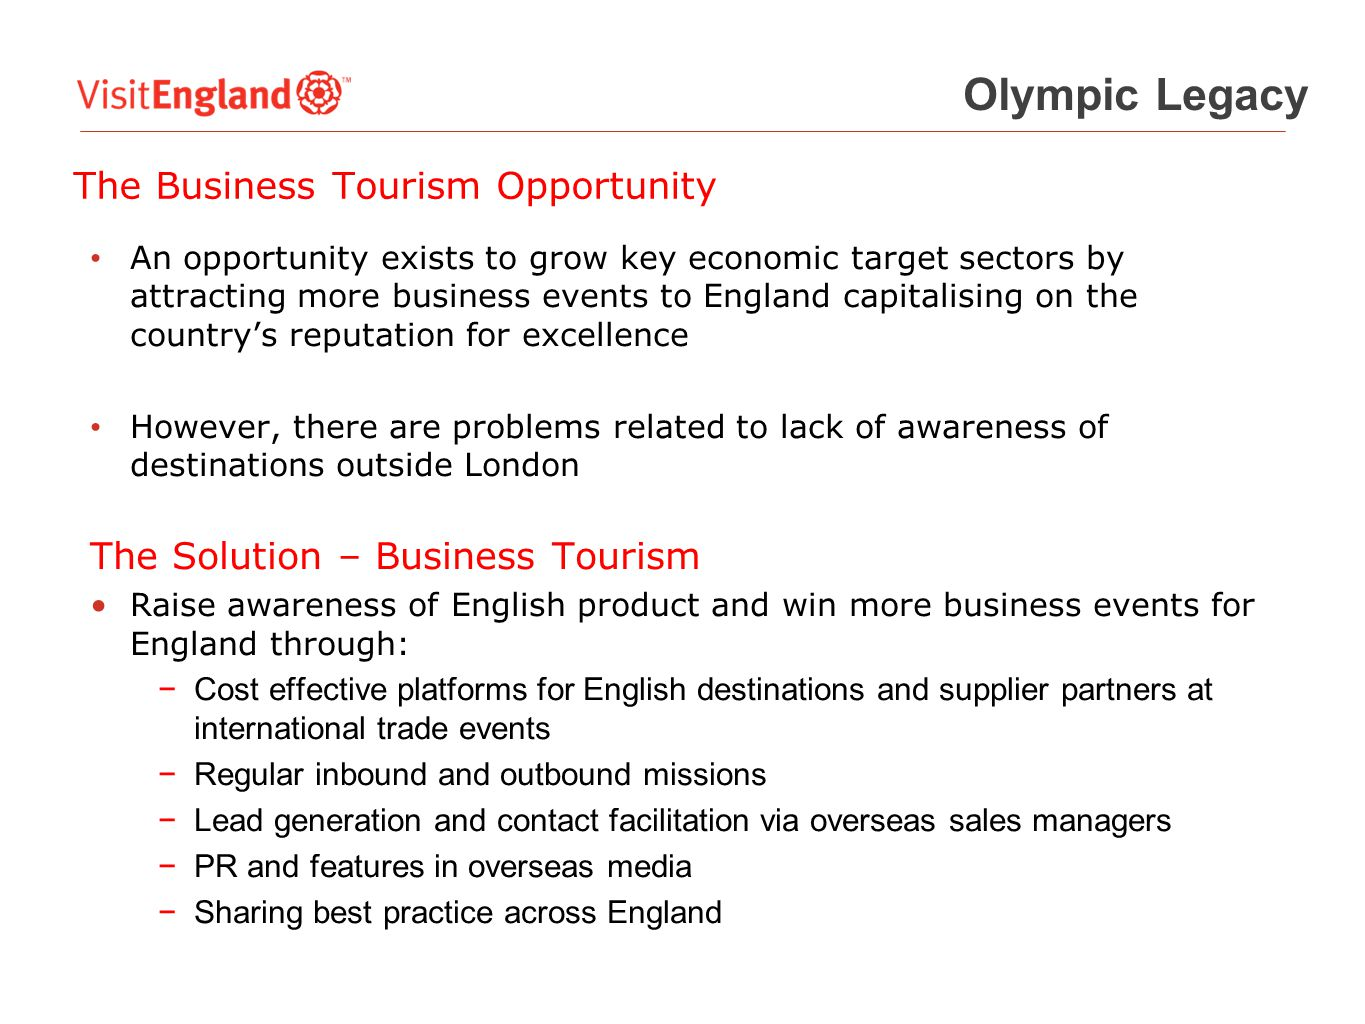 The Business Tourism Opportunity An opportunity exists to grow key economic target sectors by attracting more business events to England capitalising on the country's reputation for excellence However, there are problems related to lack of awareness of destinations outside London The Solution – Business Tourism Raise awareness of English product and win more business events for England through: −Cost effective platforms for English destinations and supplier partners at international trade events −Regular inbound and outbound missions −Lead generation and contact facilitation via overseas sales managers −PR and features in overseas media −Sharing best practice across England Olympic Legacy